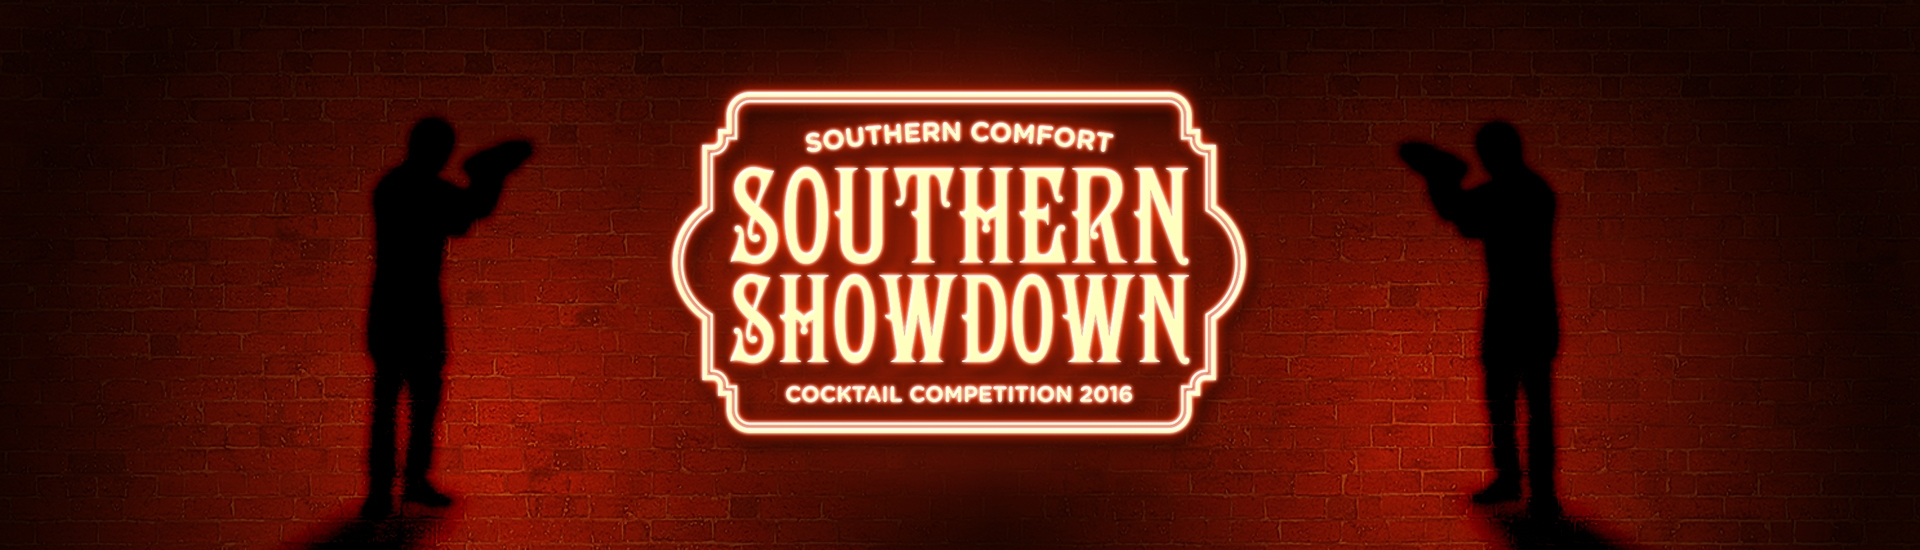 Hi-Spirits launches Southern Comfort Cocktail Competition